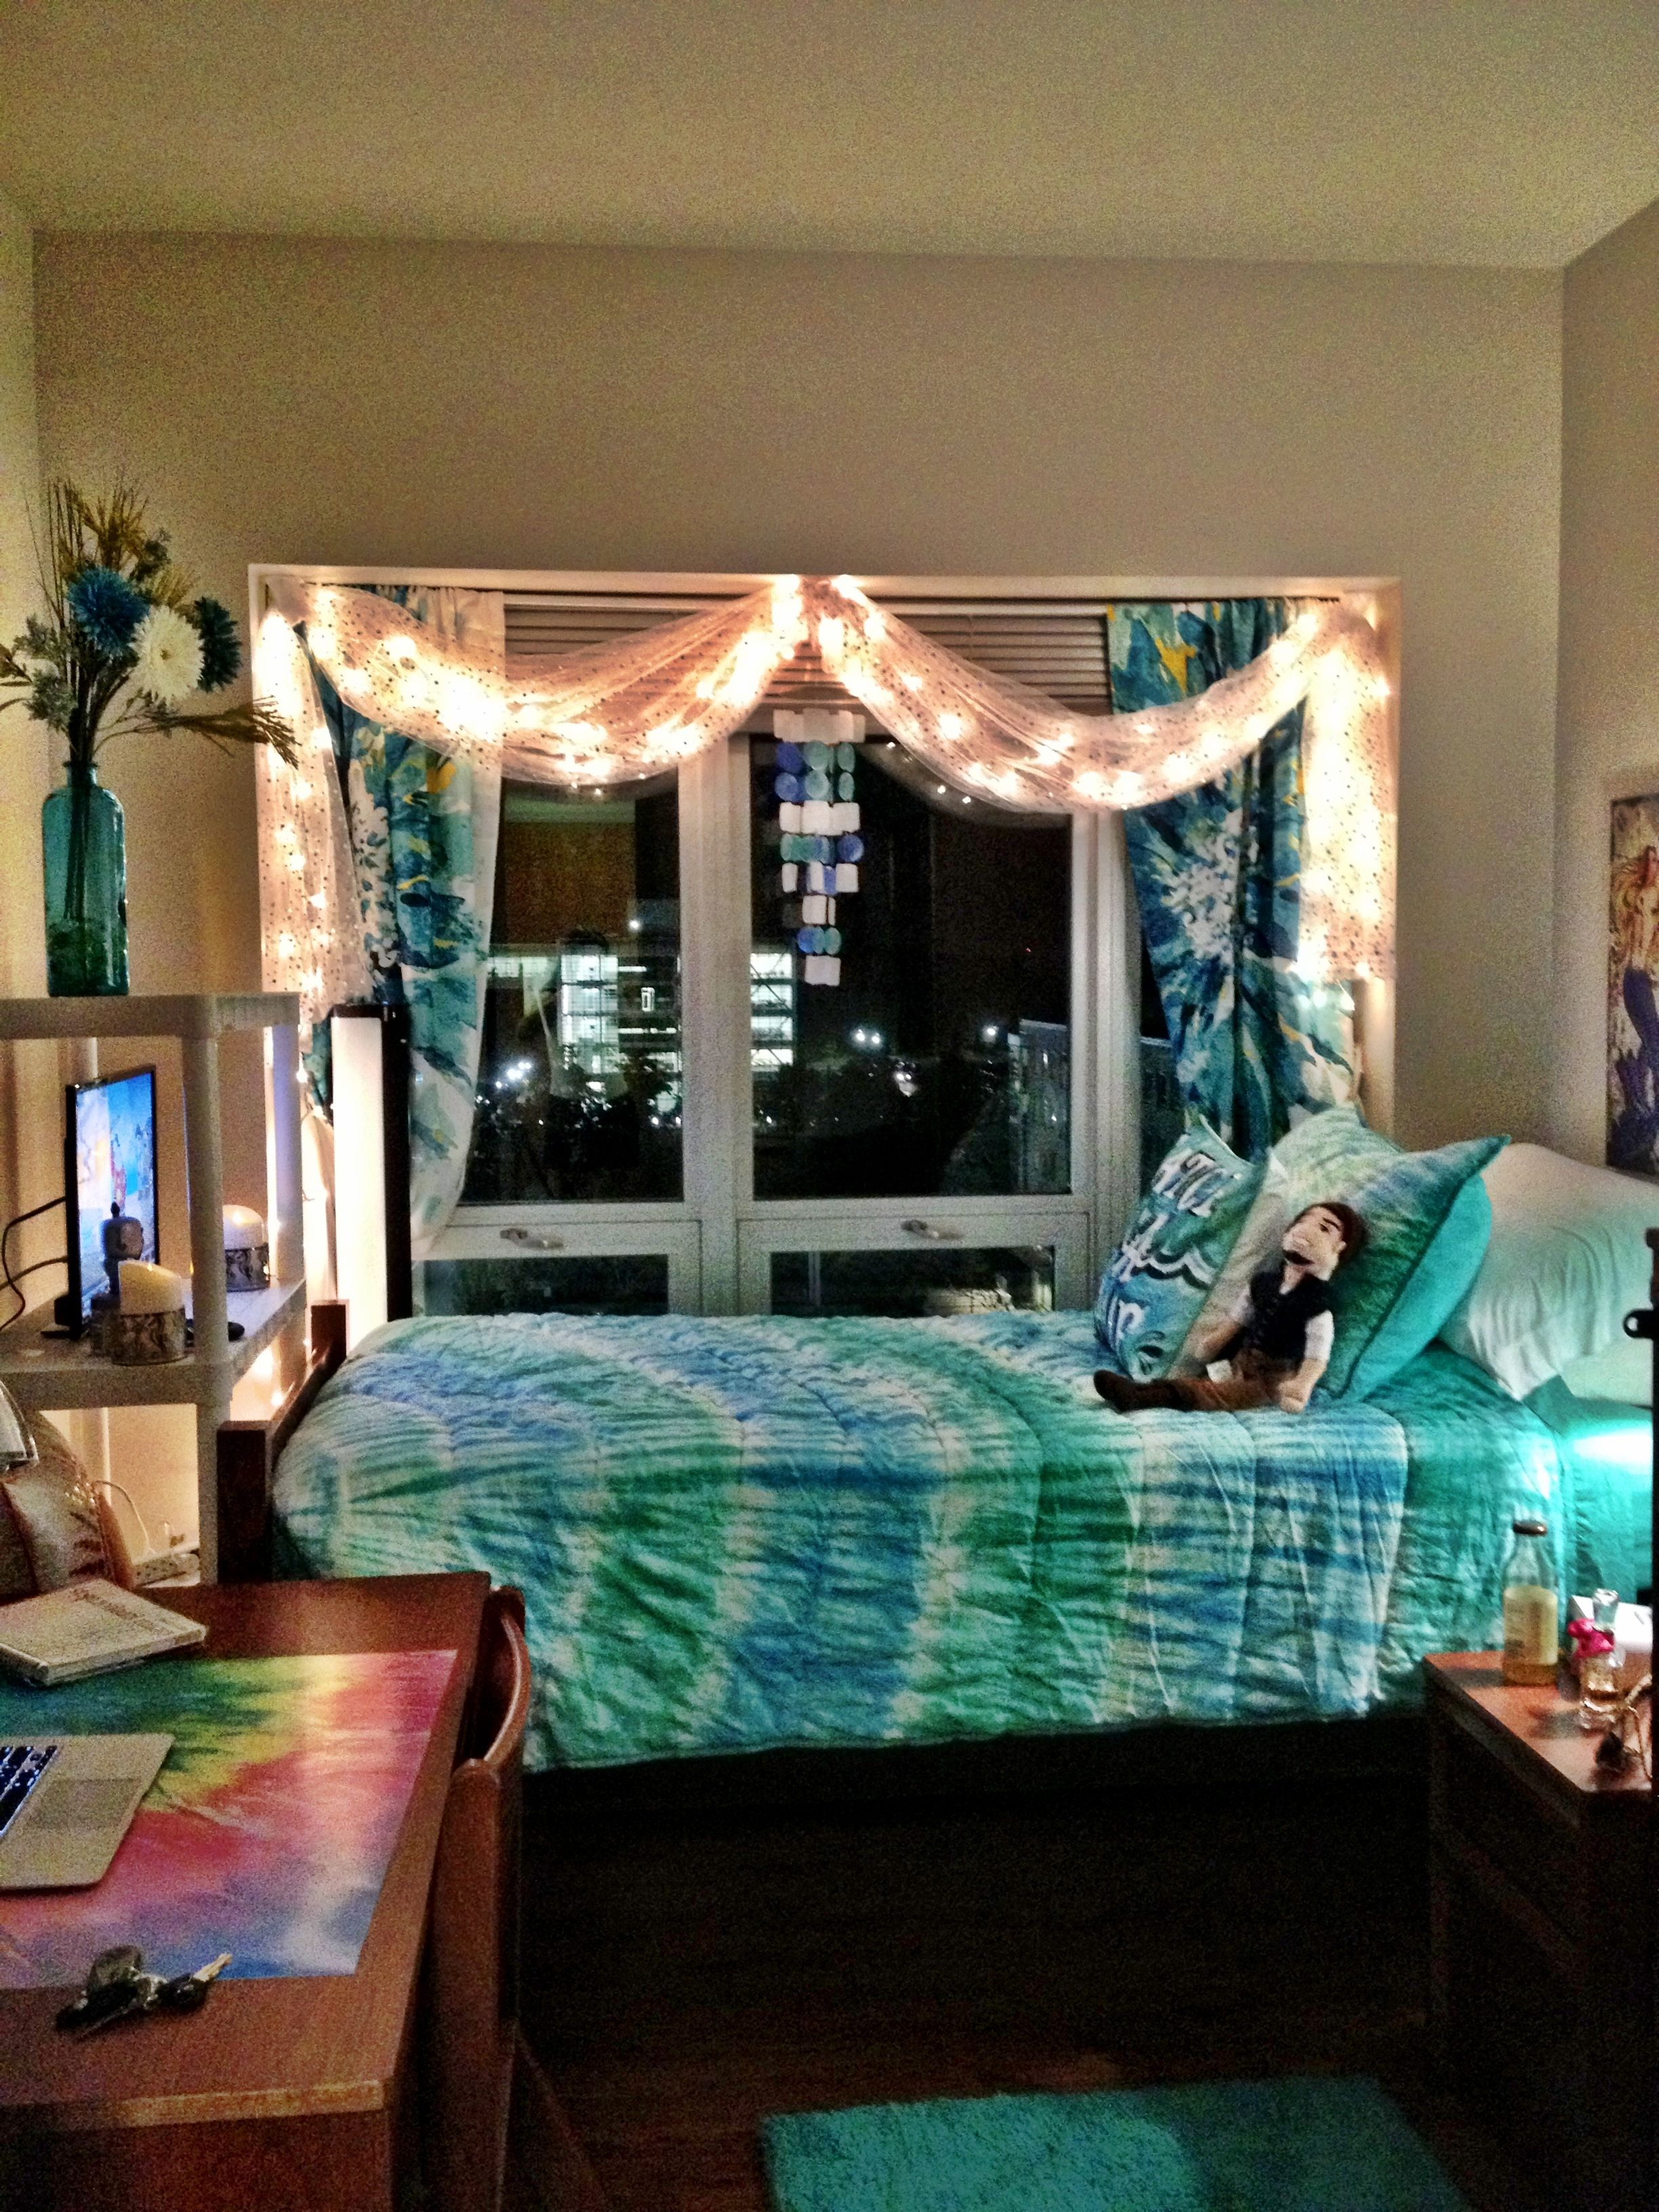 Pin by Amanda Smith on College Bound Pinterest